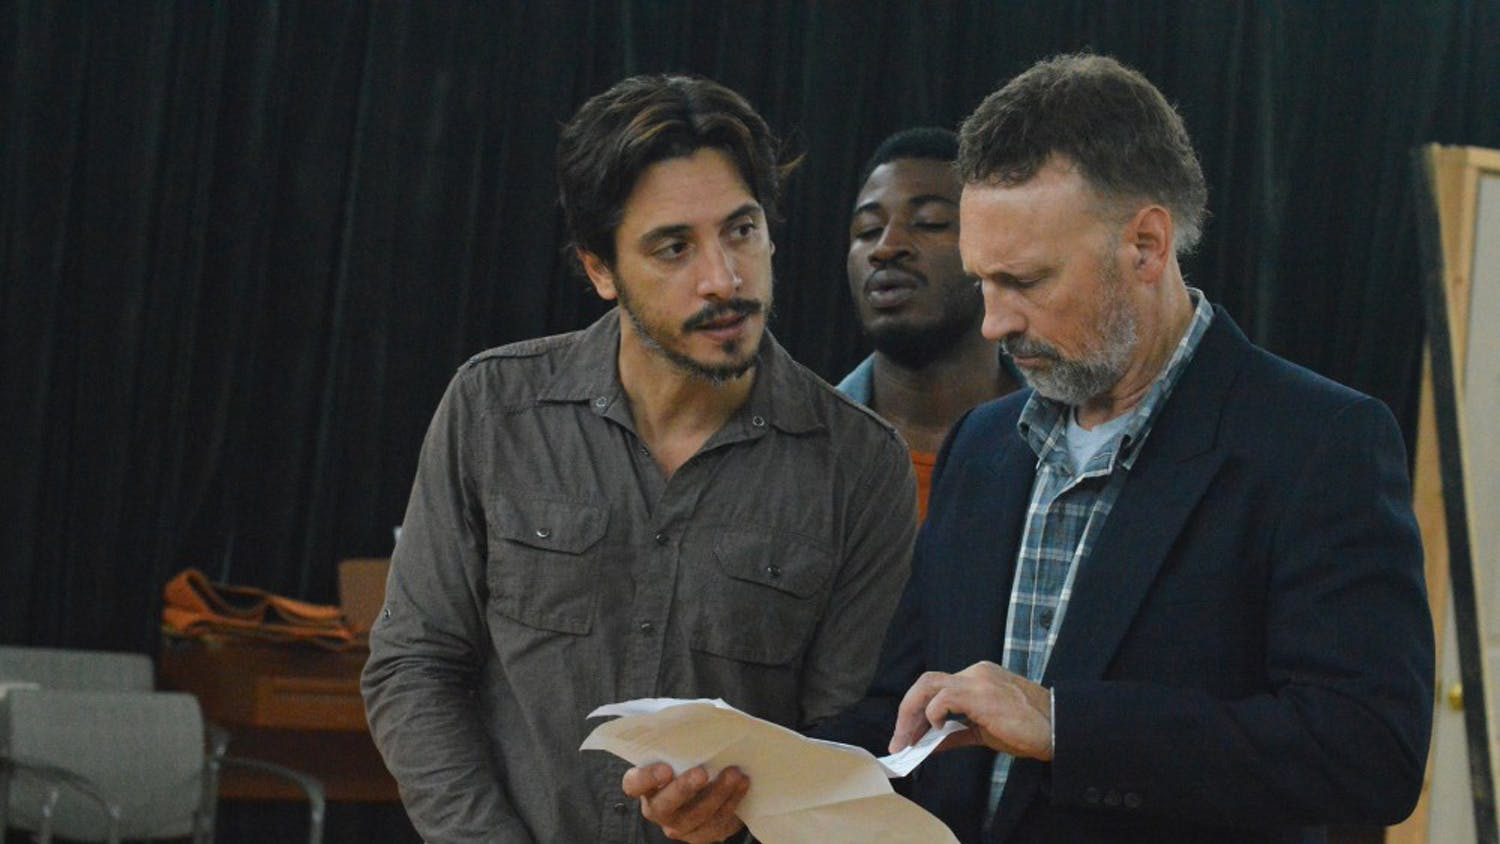 Ariel Shafir, Tristan Parks, and Jeffrey Cornell discuss important documents during rehearsal for Playmakers rendition of The Crucible in the Center of Dramatic Art on Wednesday, Oct. 5th.  The Crucible debuts on Oct. 19th, 2016.